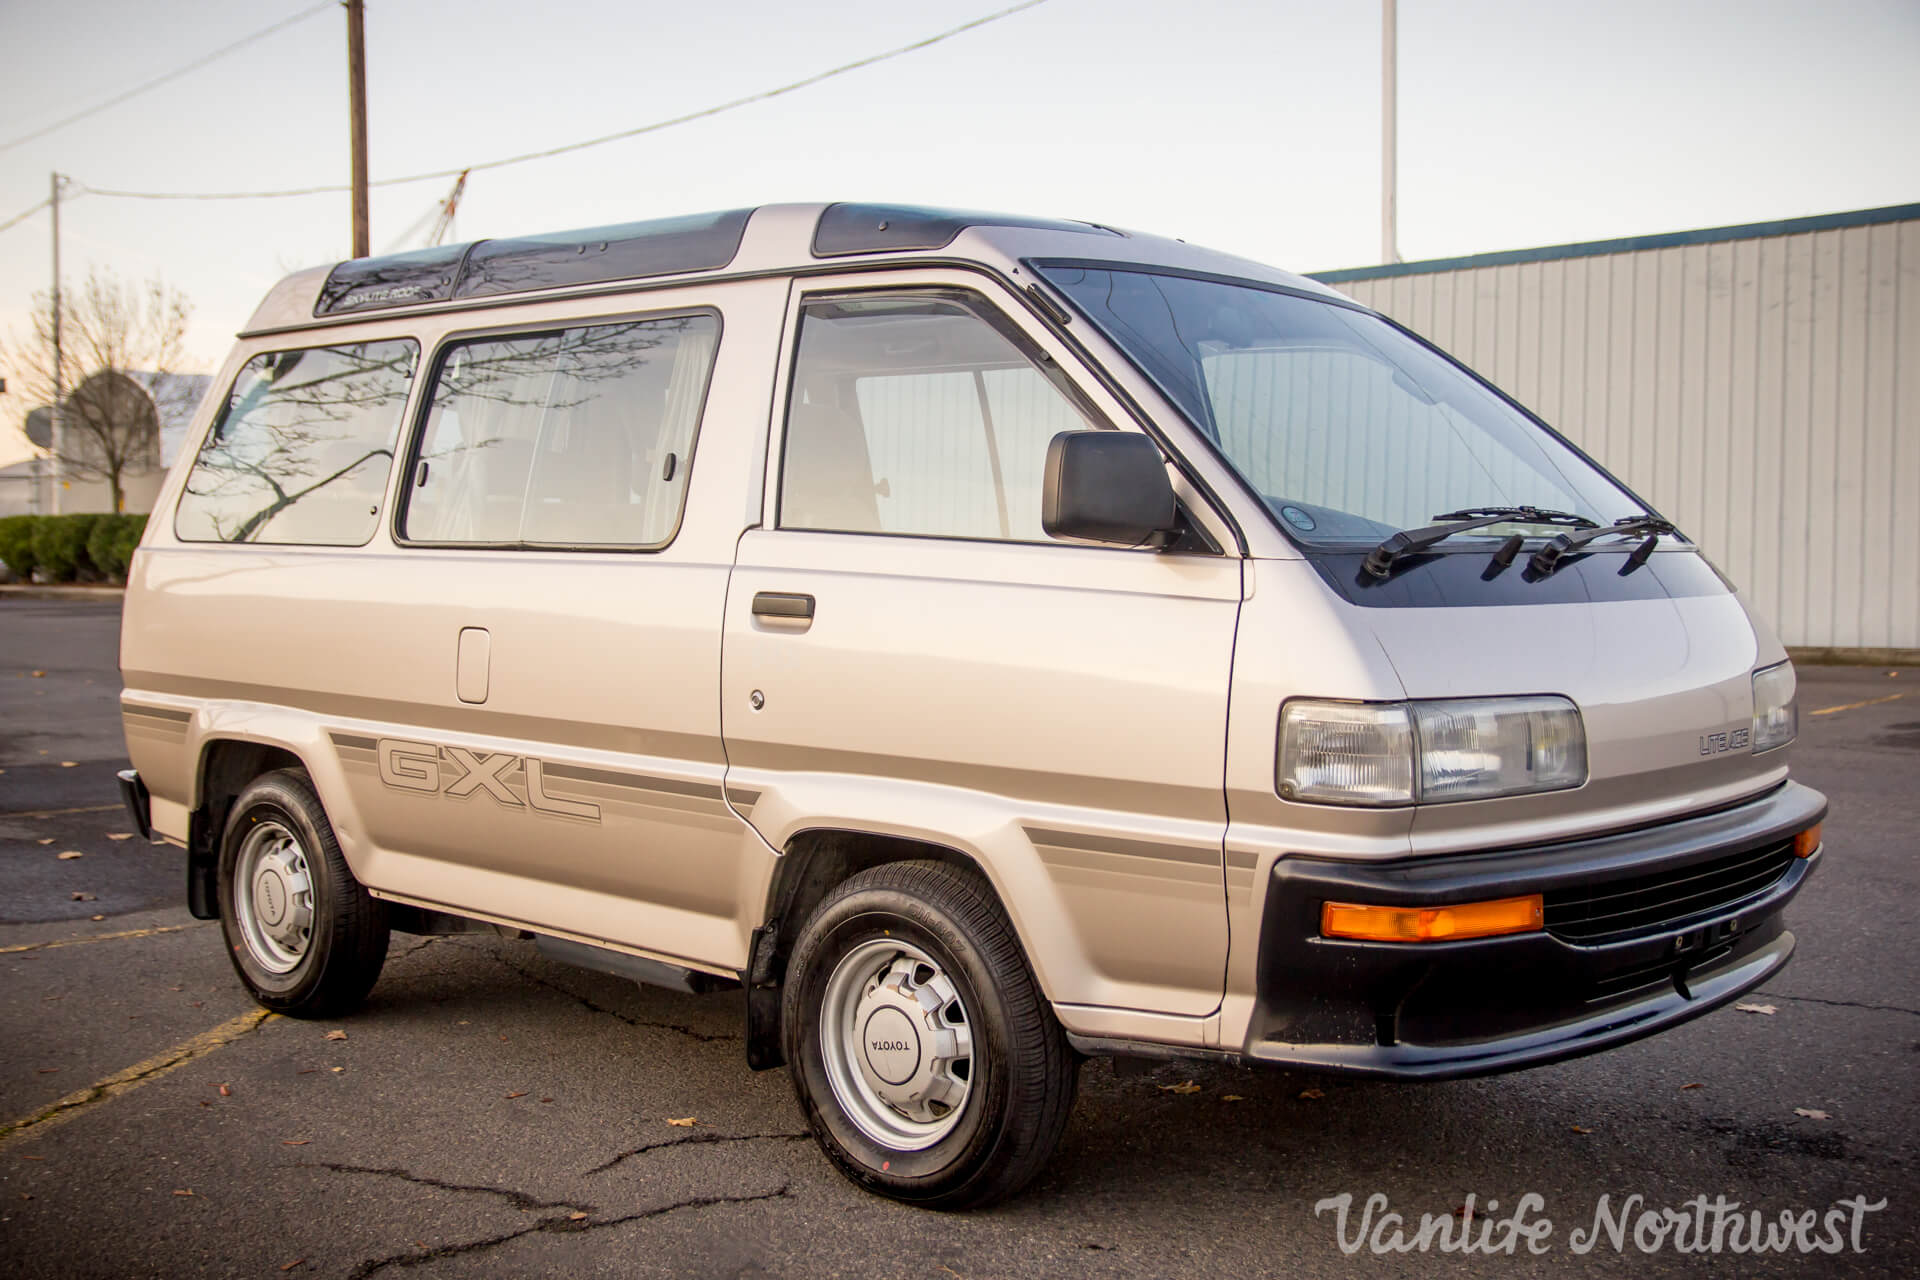 1989ToyotaLiteAce2wdGas65kGXL-10.jpg